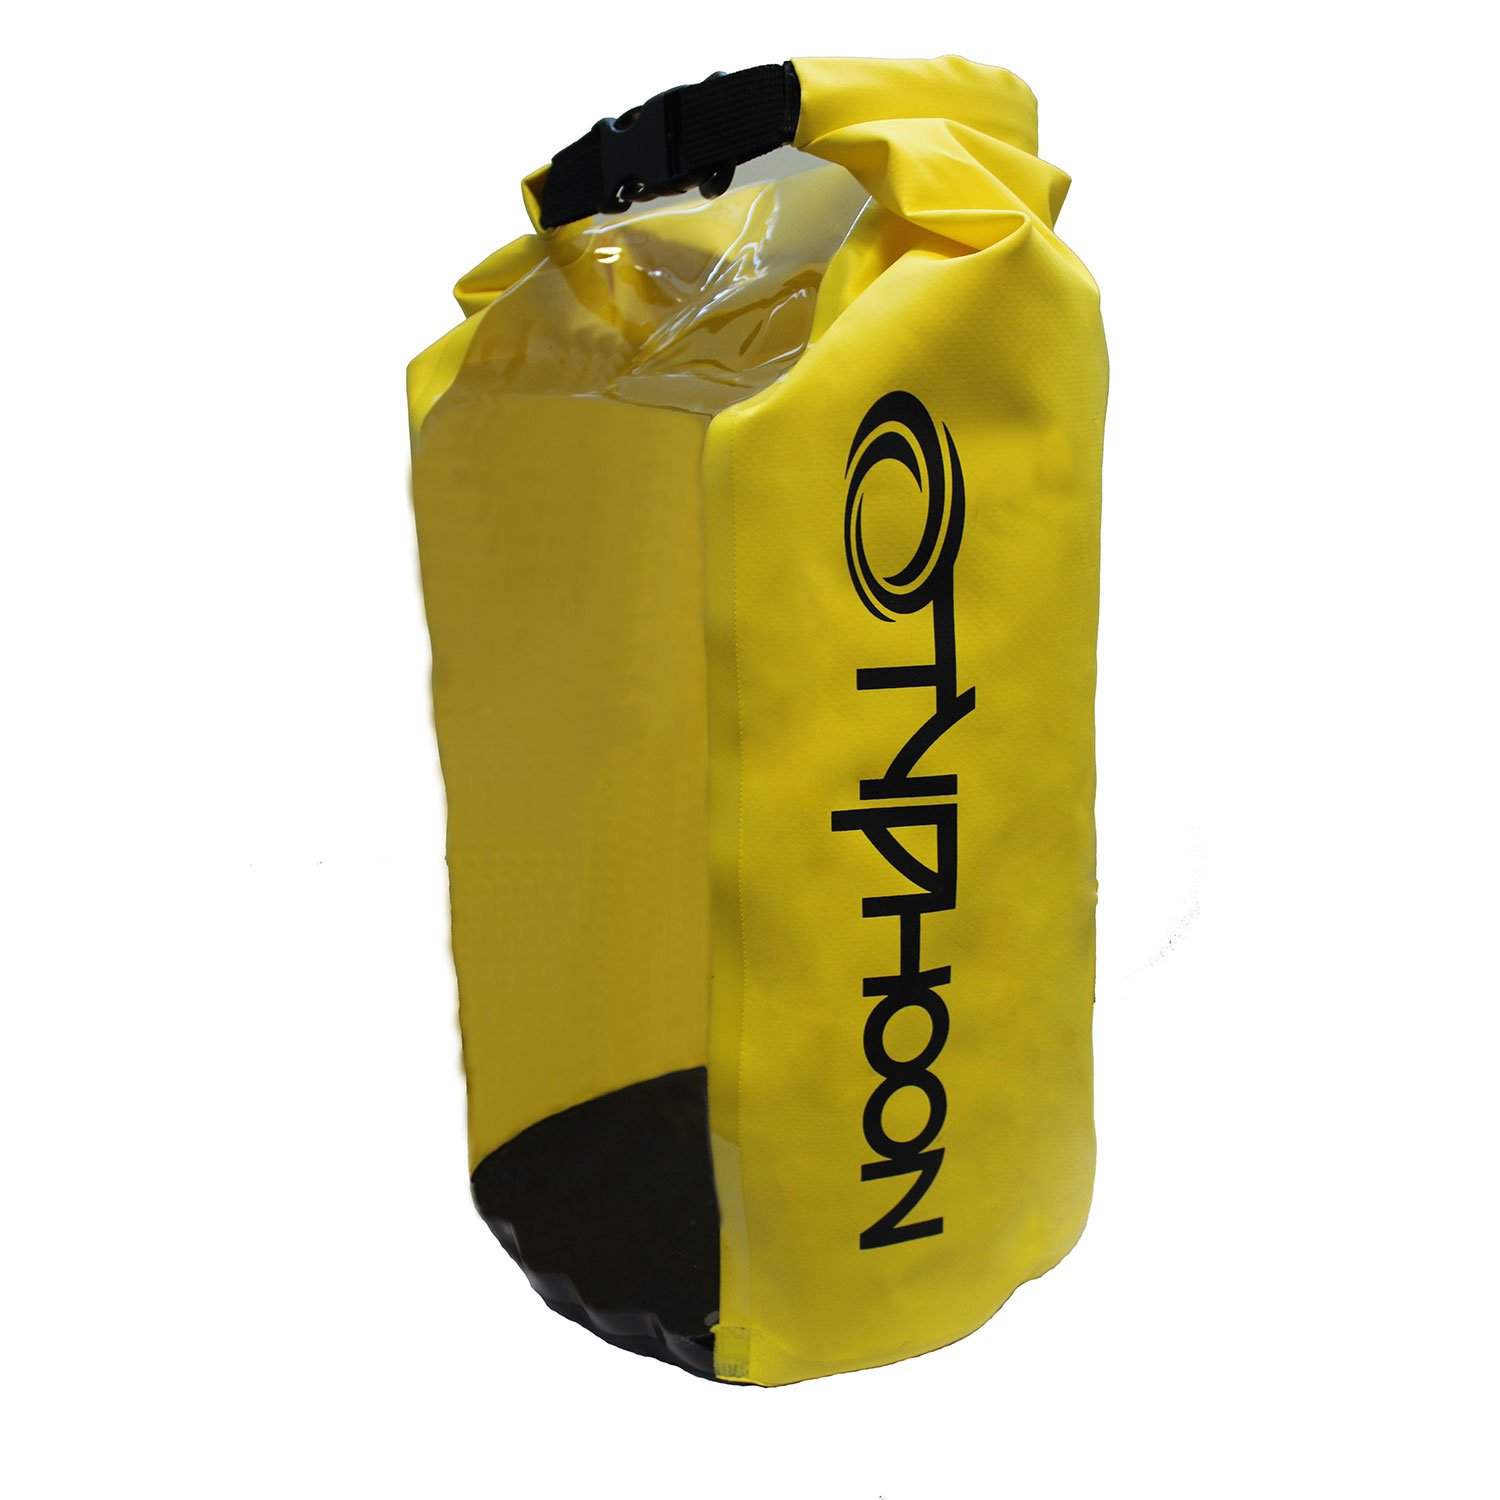 Typhoon Heavy Duty Roll Top Dry Bags - Gelb B07C7CT3SJ Bekleidung Mode dynamisch